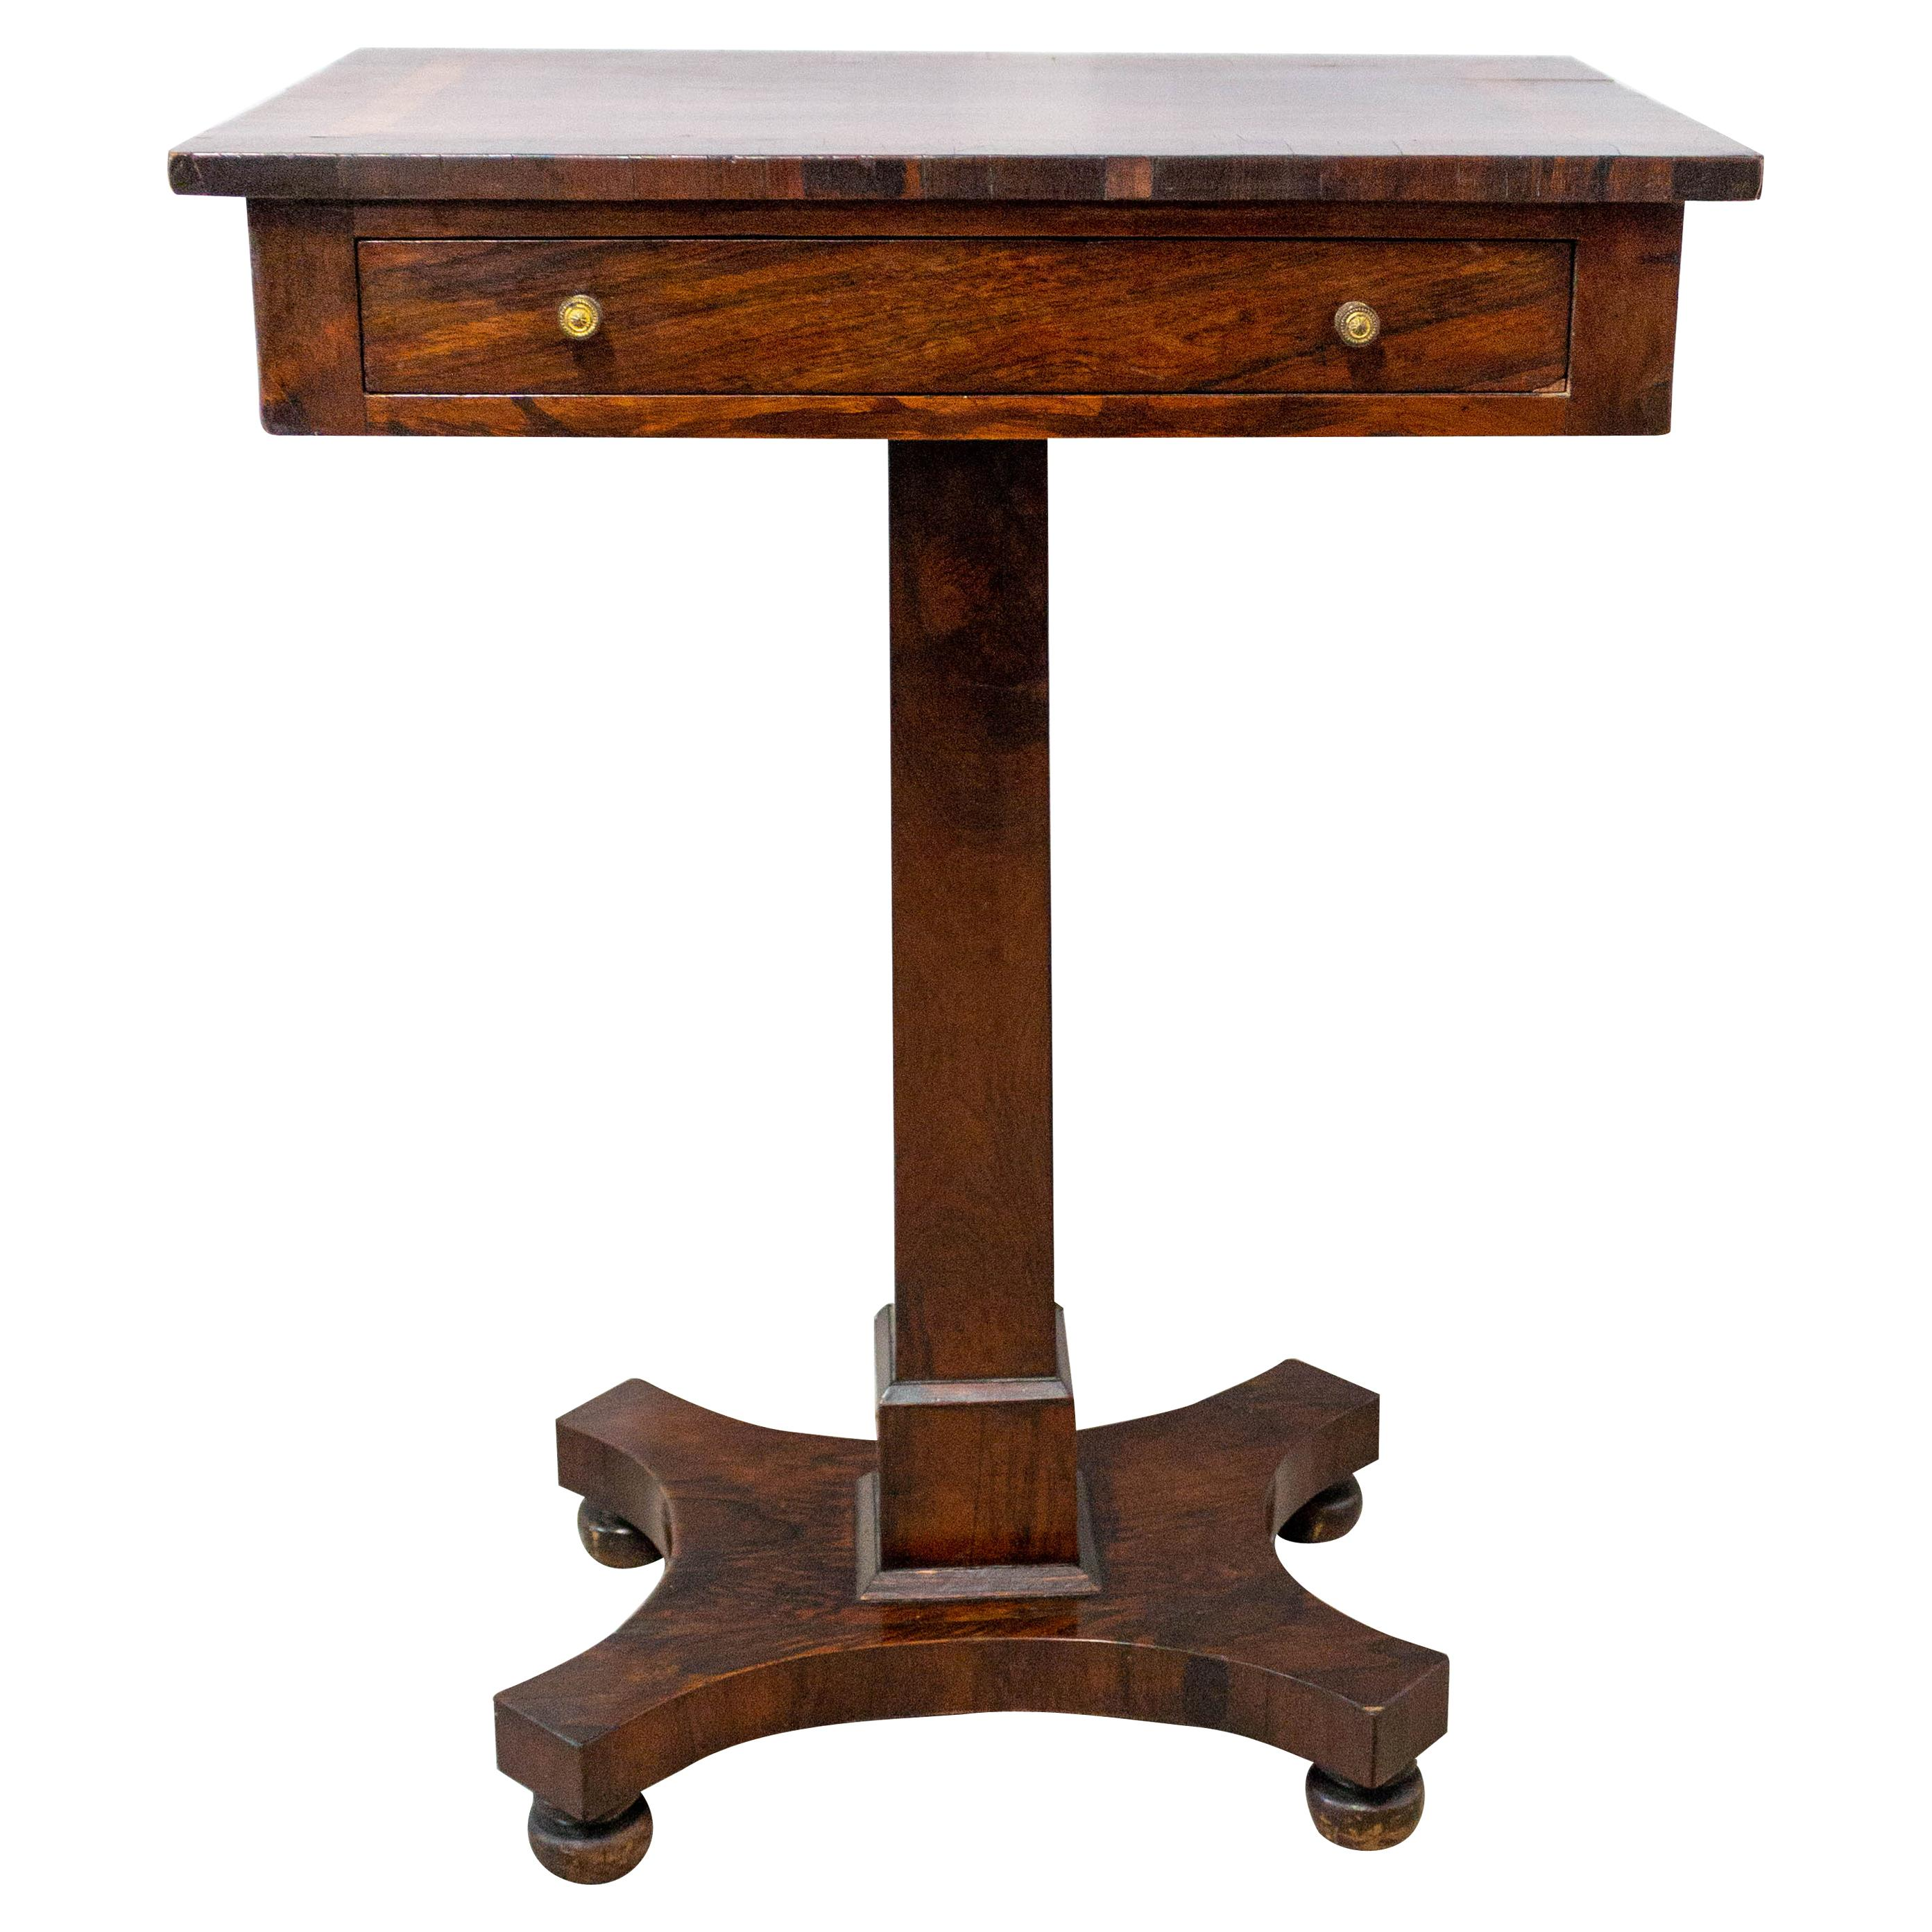 English Victorian Marquetry Sellette Side Table, Mid-19th Century